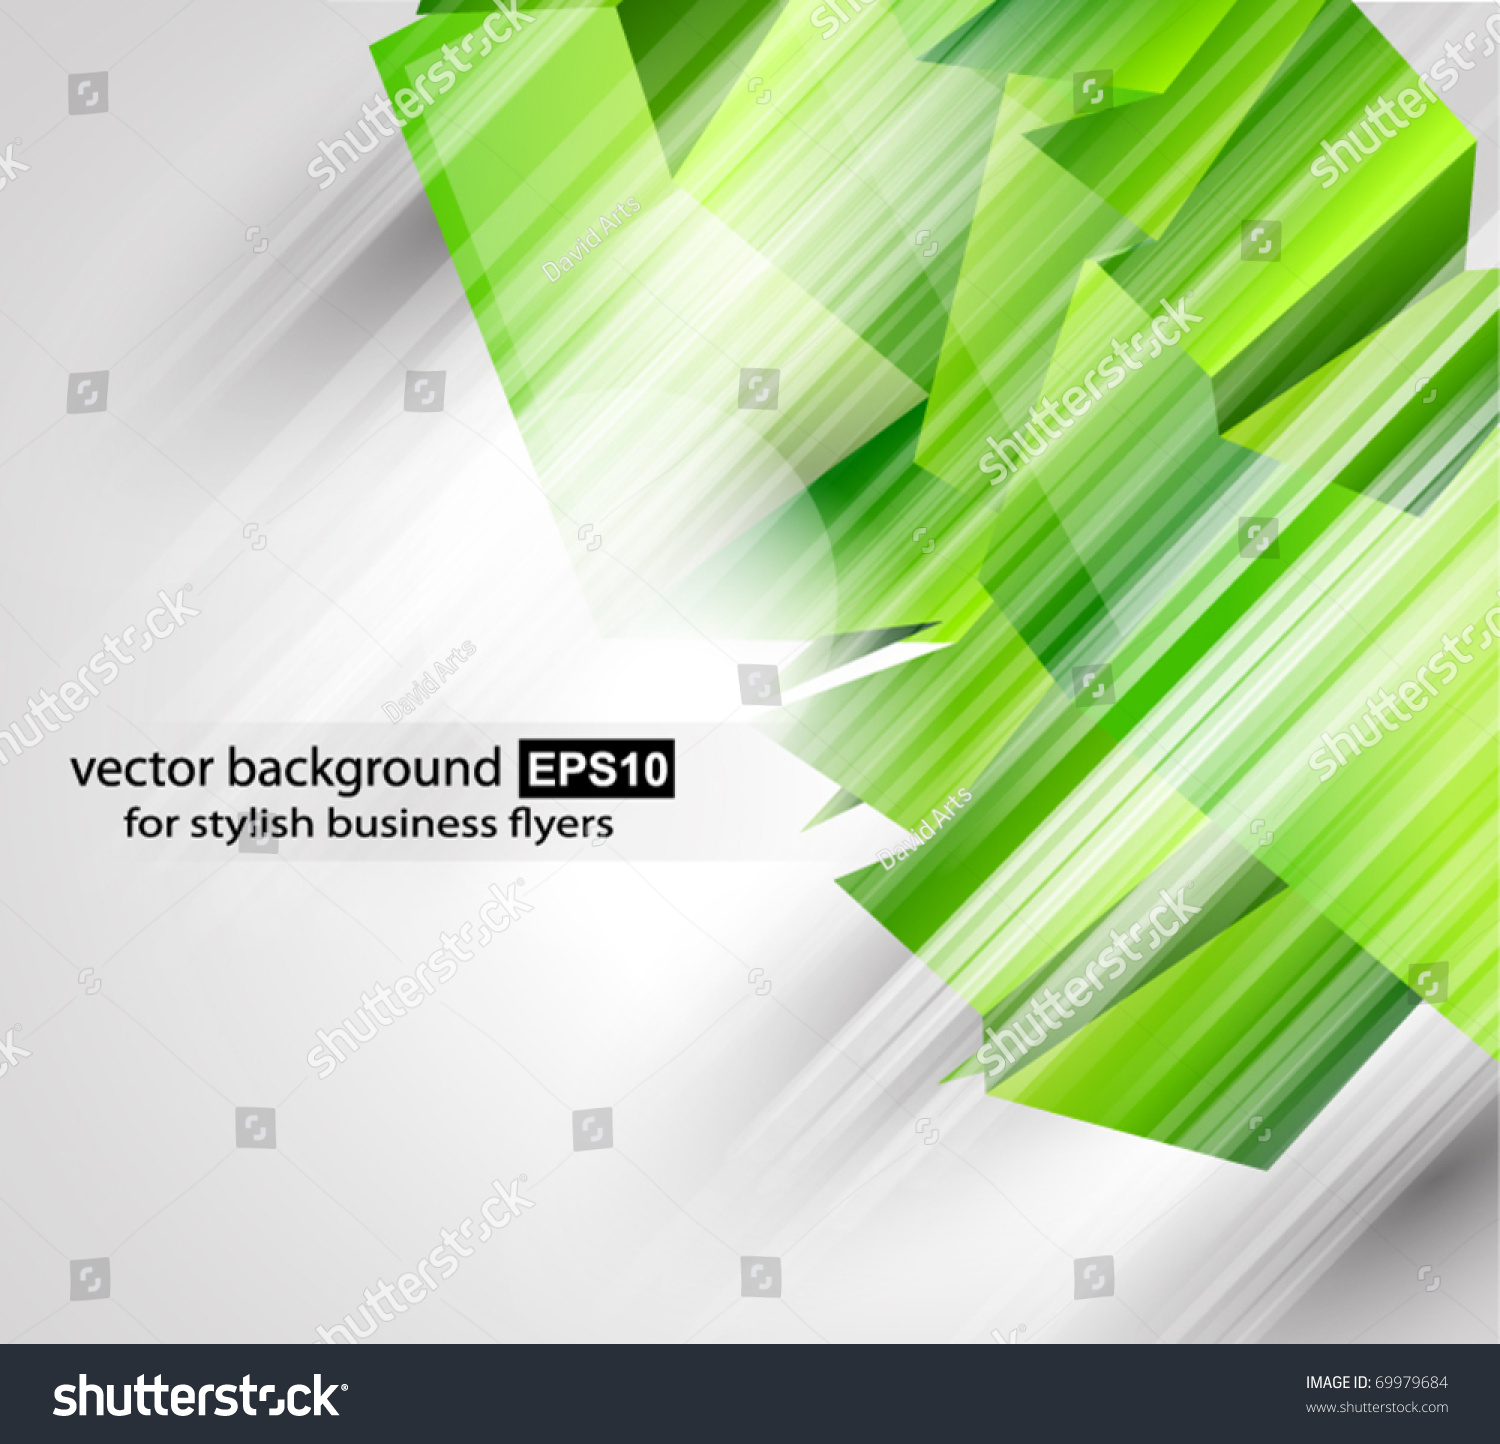 abstract business background stylish professional flyers stock abstract business background for stylish professional flyers